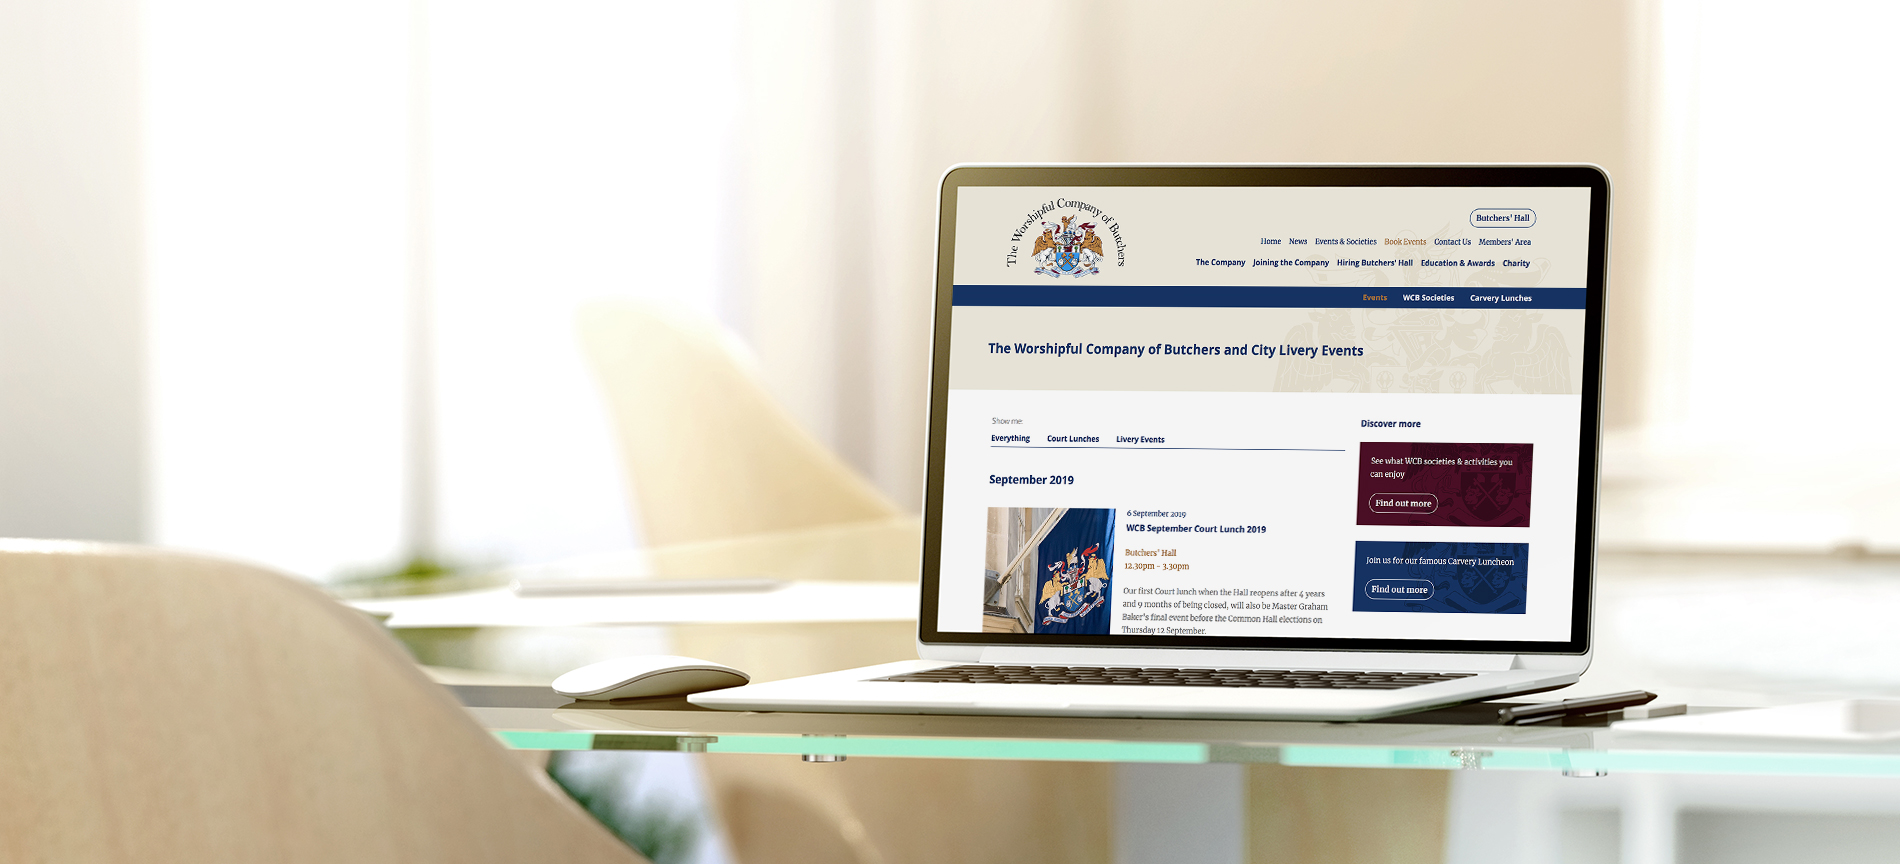 The Worshipful Company of Butchers website on a laptop - desktop